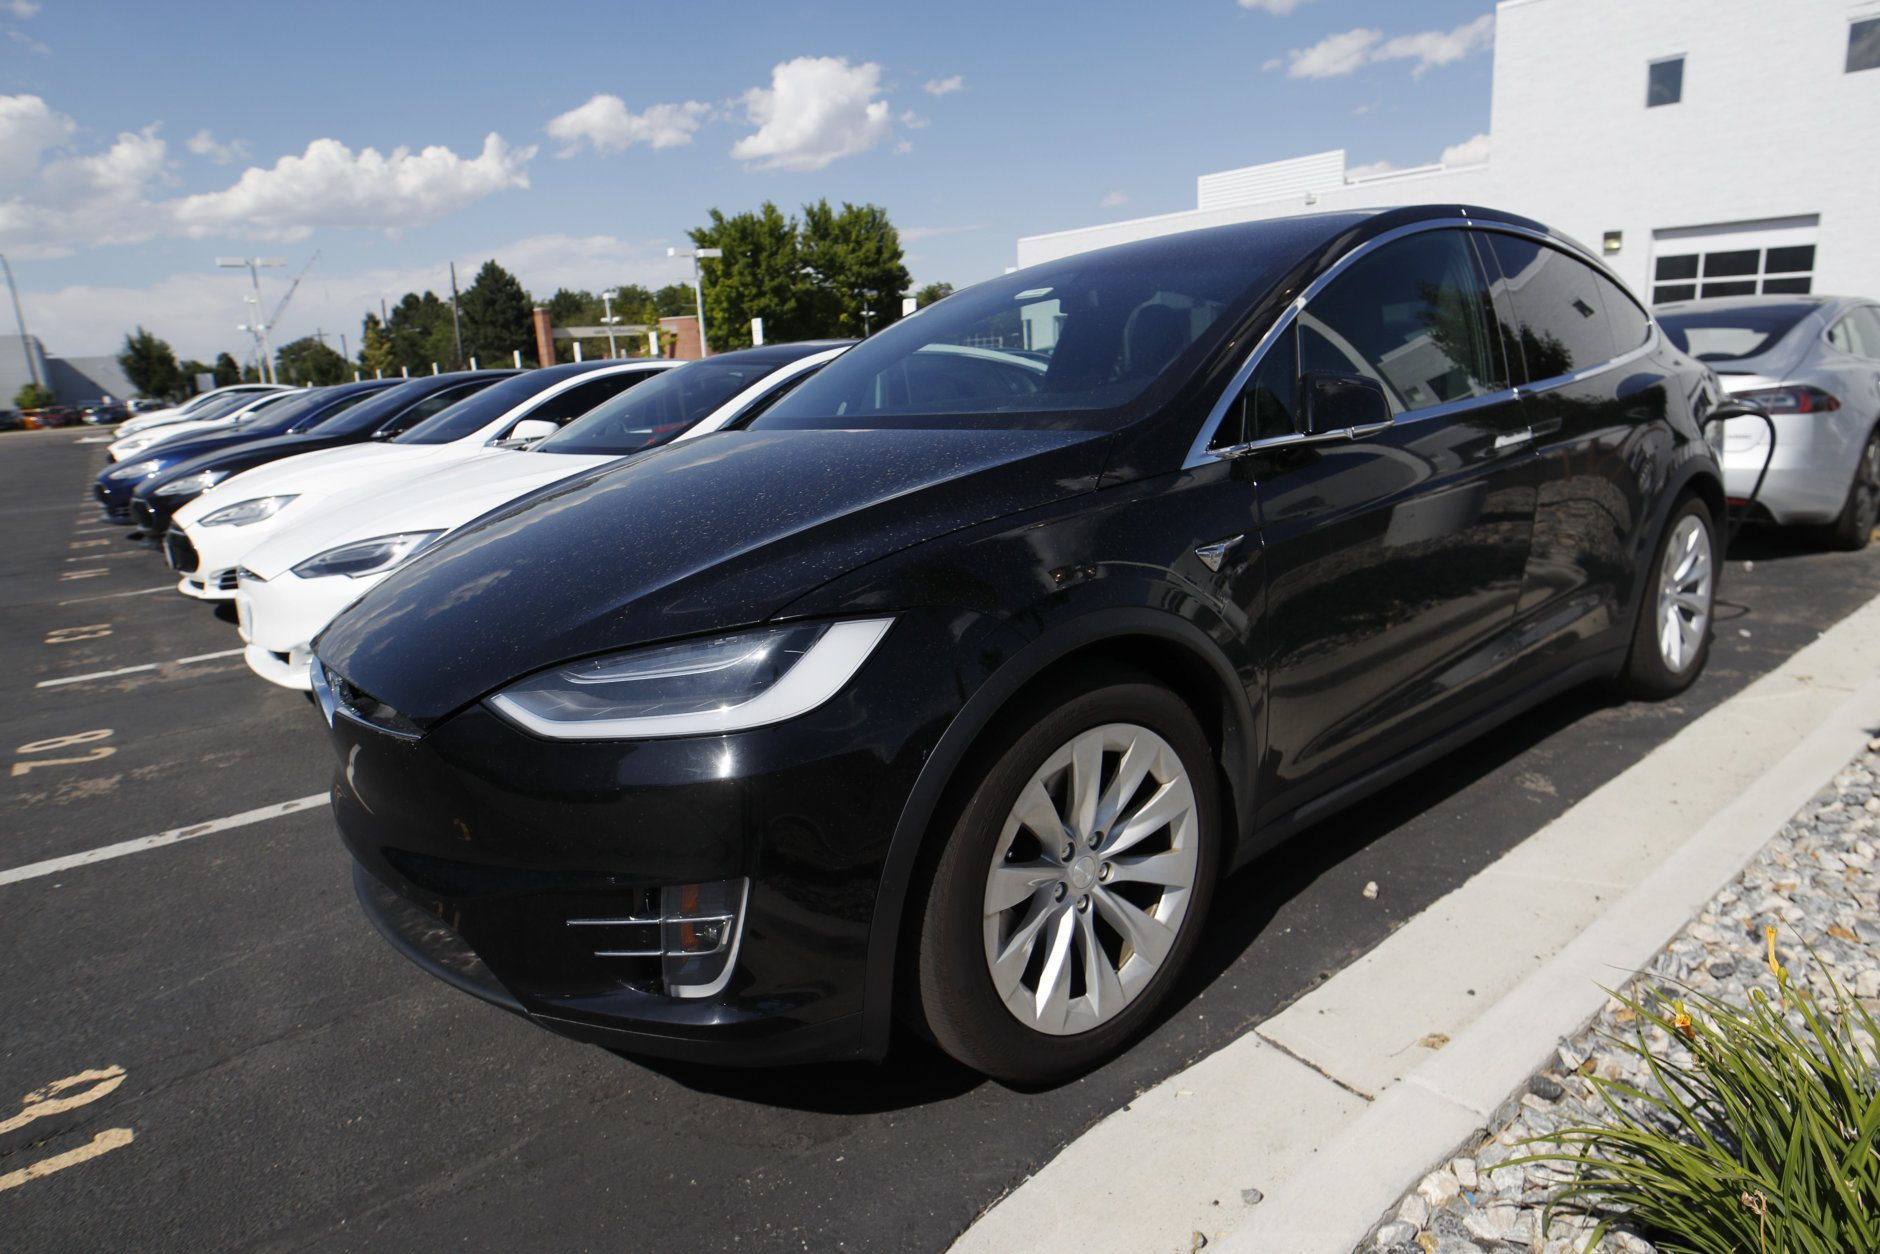 <h3>Tesla Model X</h3> <p>The third least stolen vehicle in this year&#8217;s report is the Tesla Model X.</p>